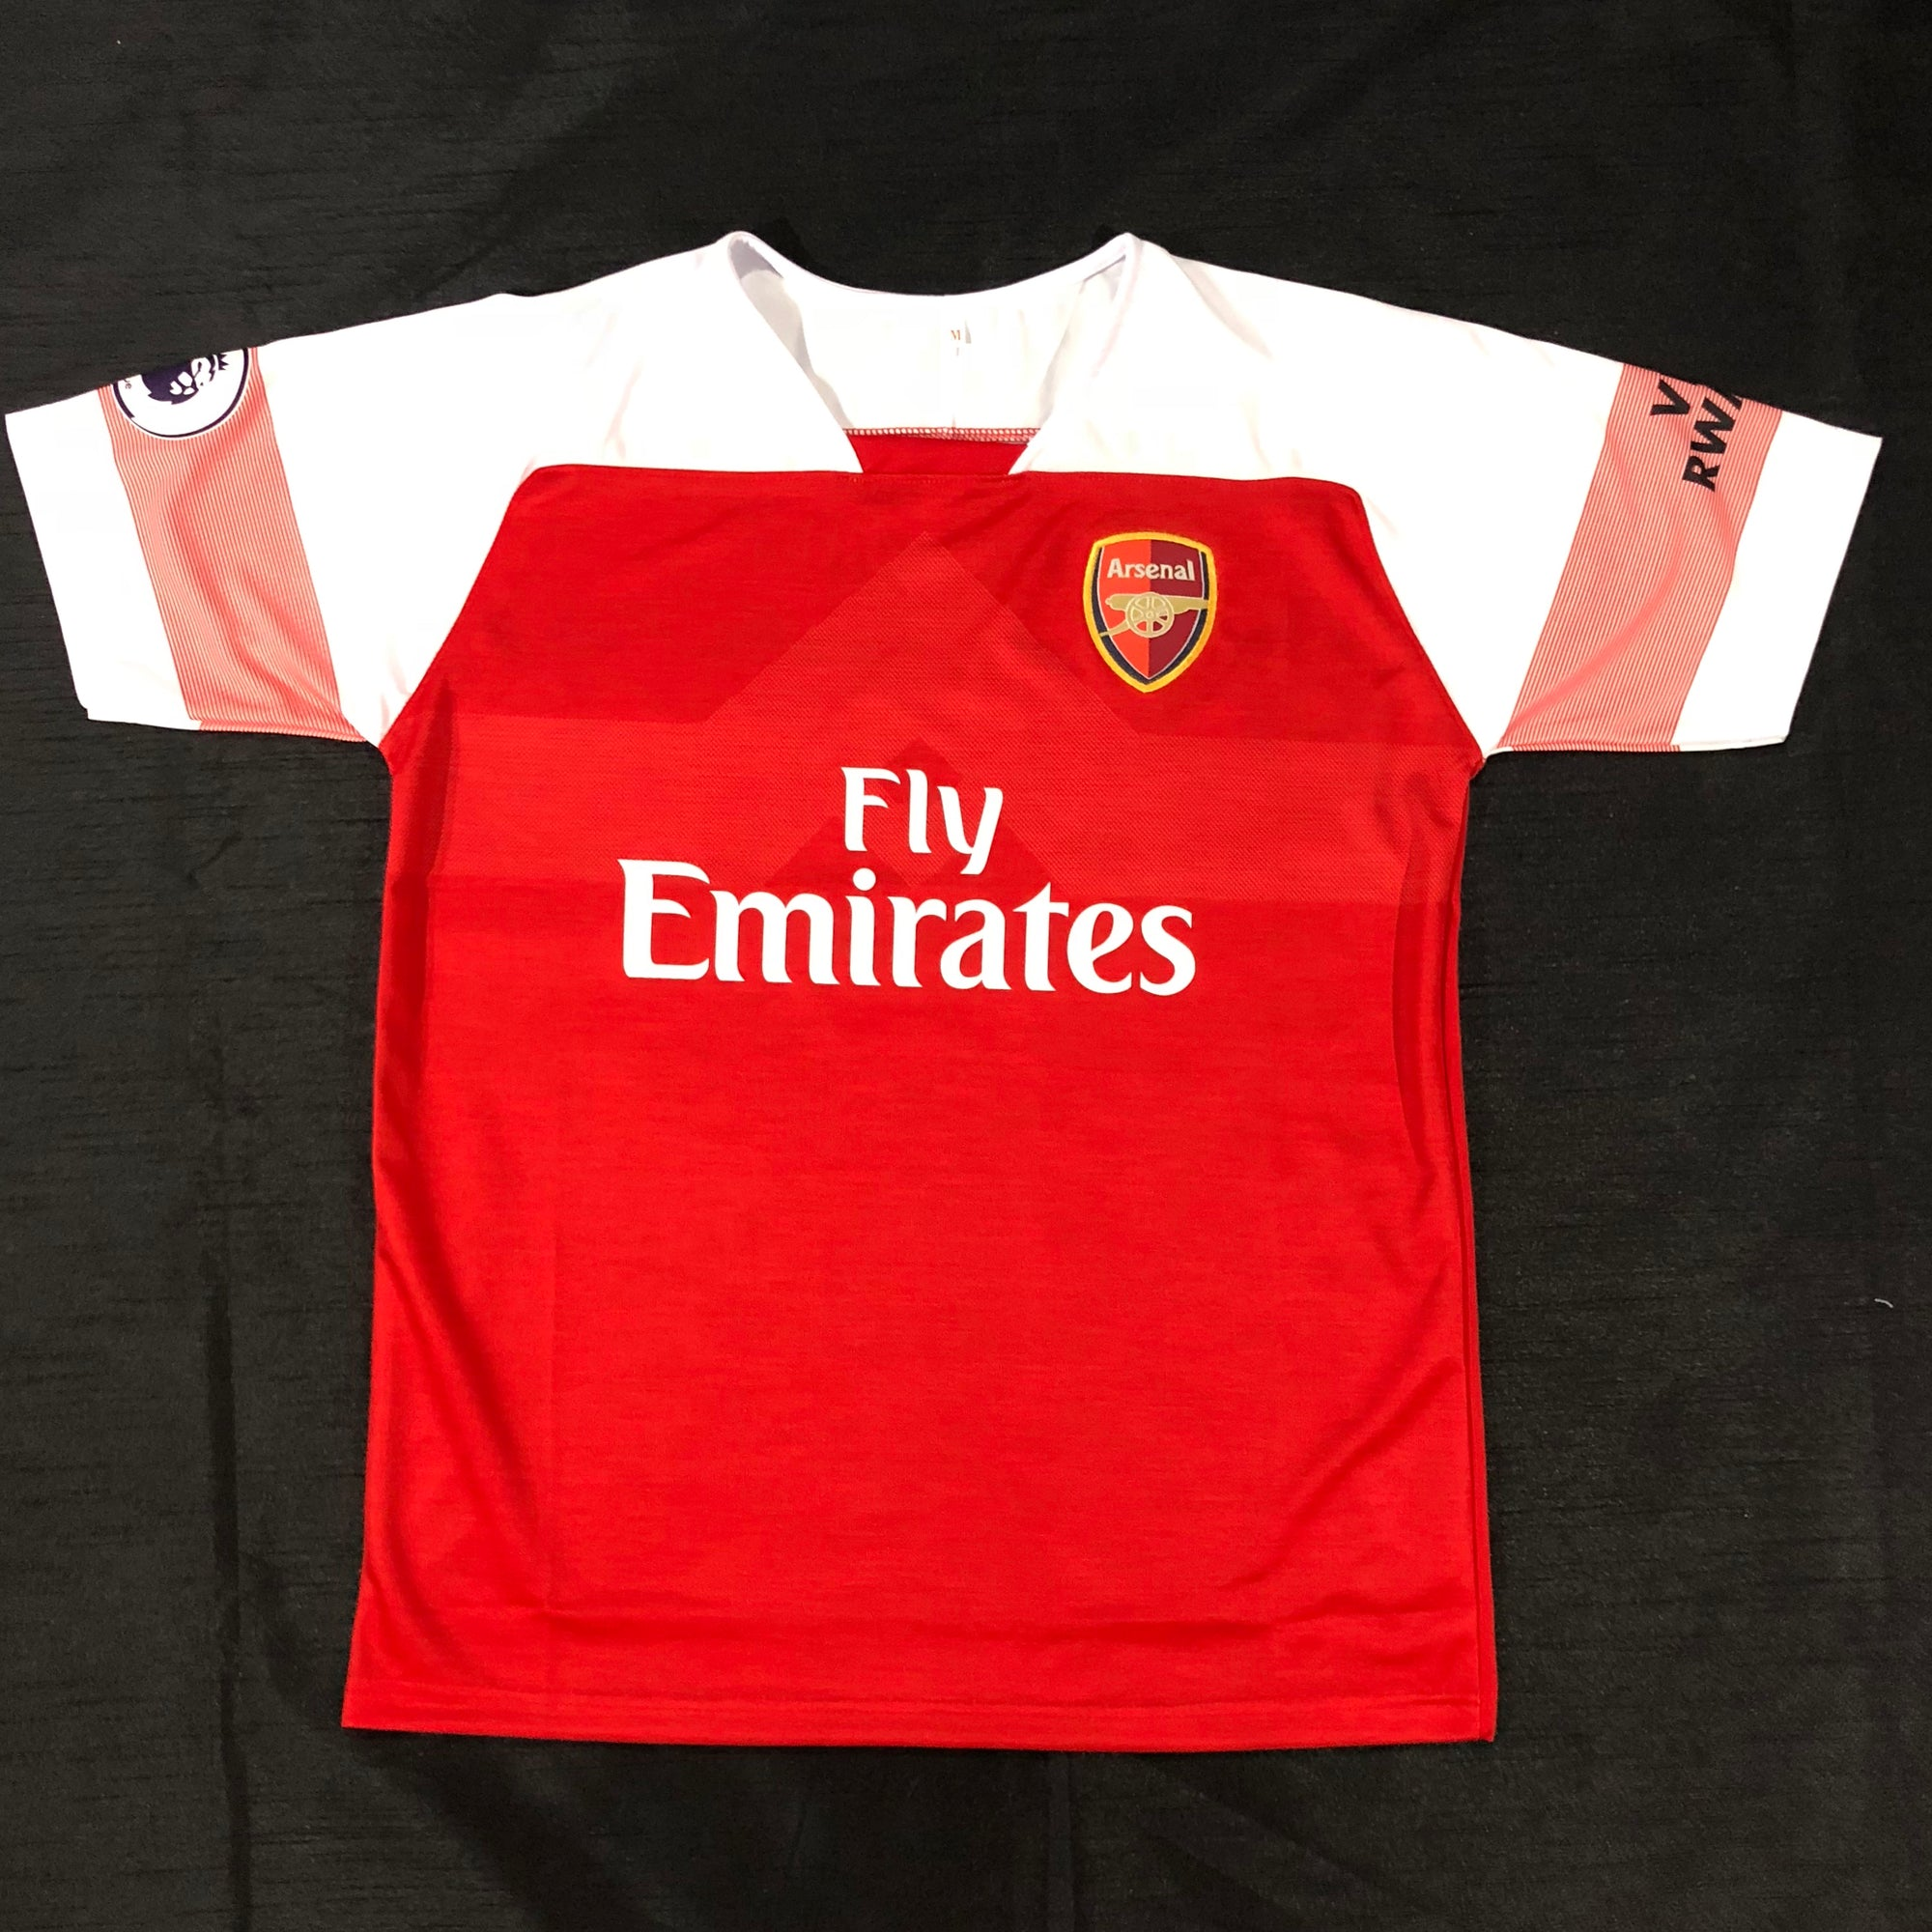 Arsenal Home 2018/19 Adult Shirt ~ Replica Version